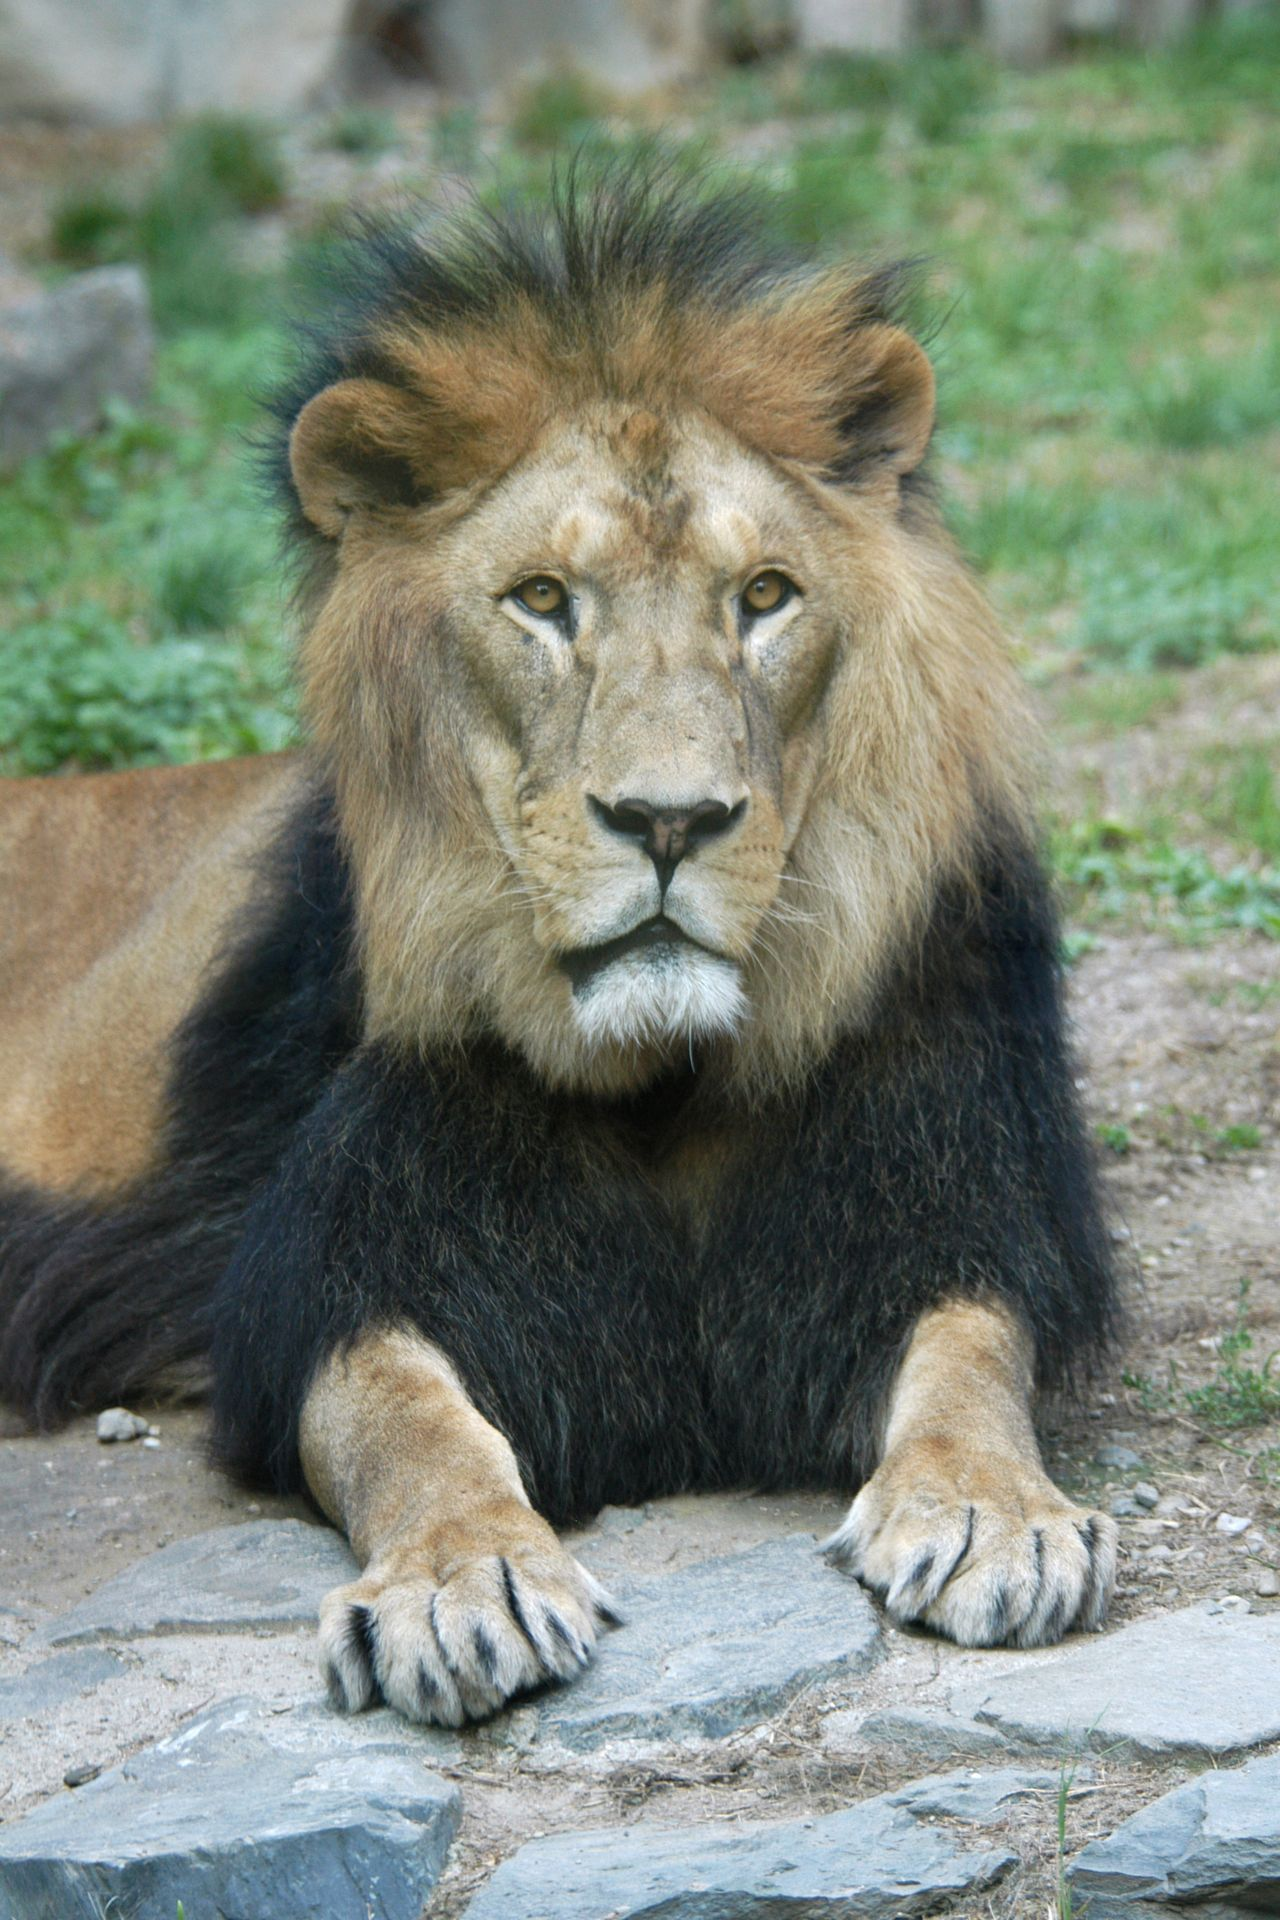 8 Different Species Of Lions With Pictures (With images